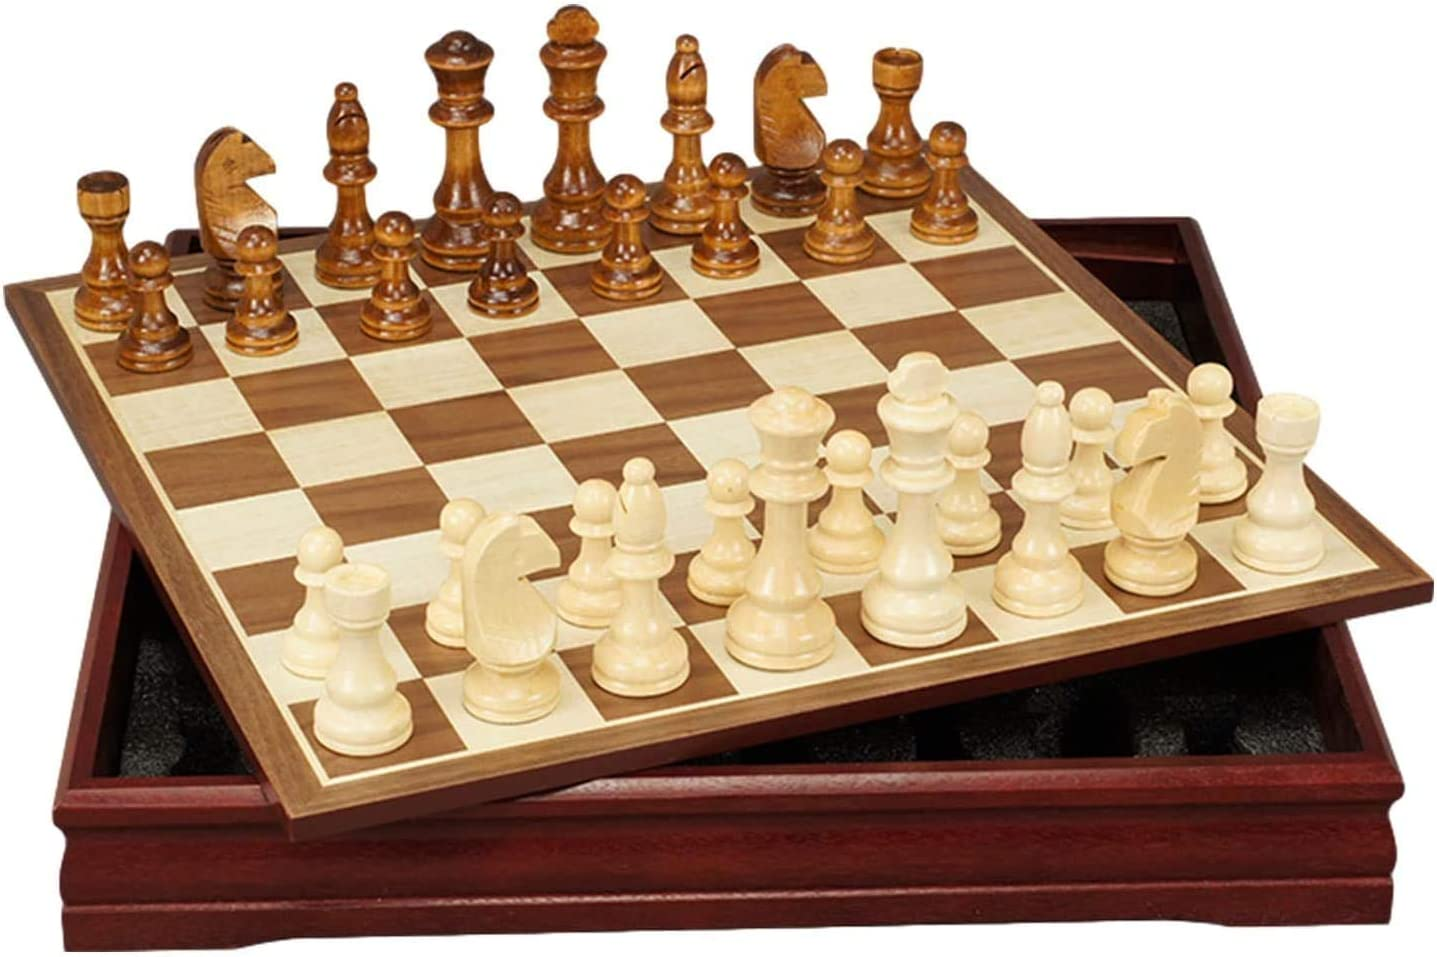 ZHZHUANG Chess Set, We Department store OFFer at cheap prices Board Set,International Set